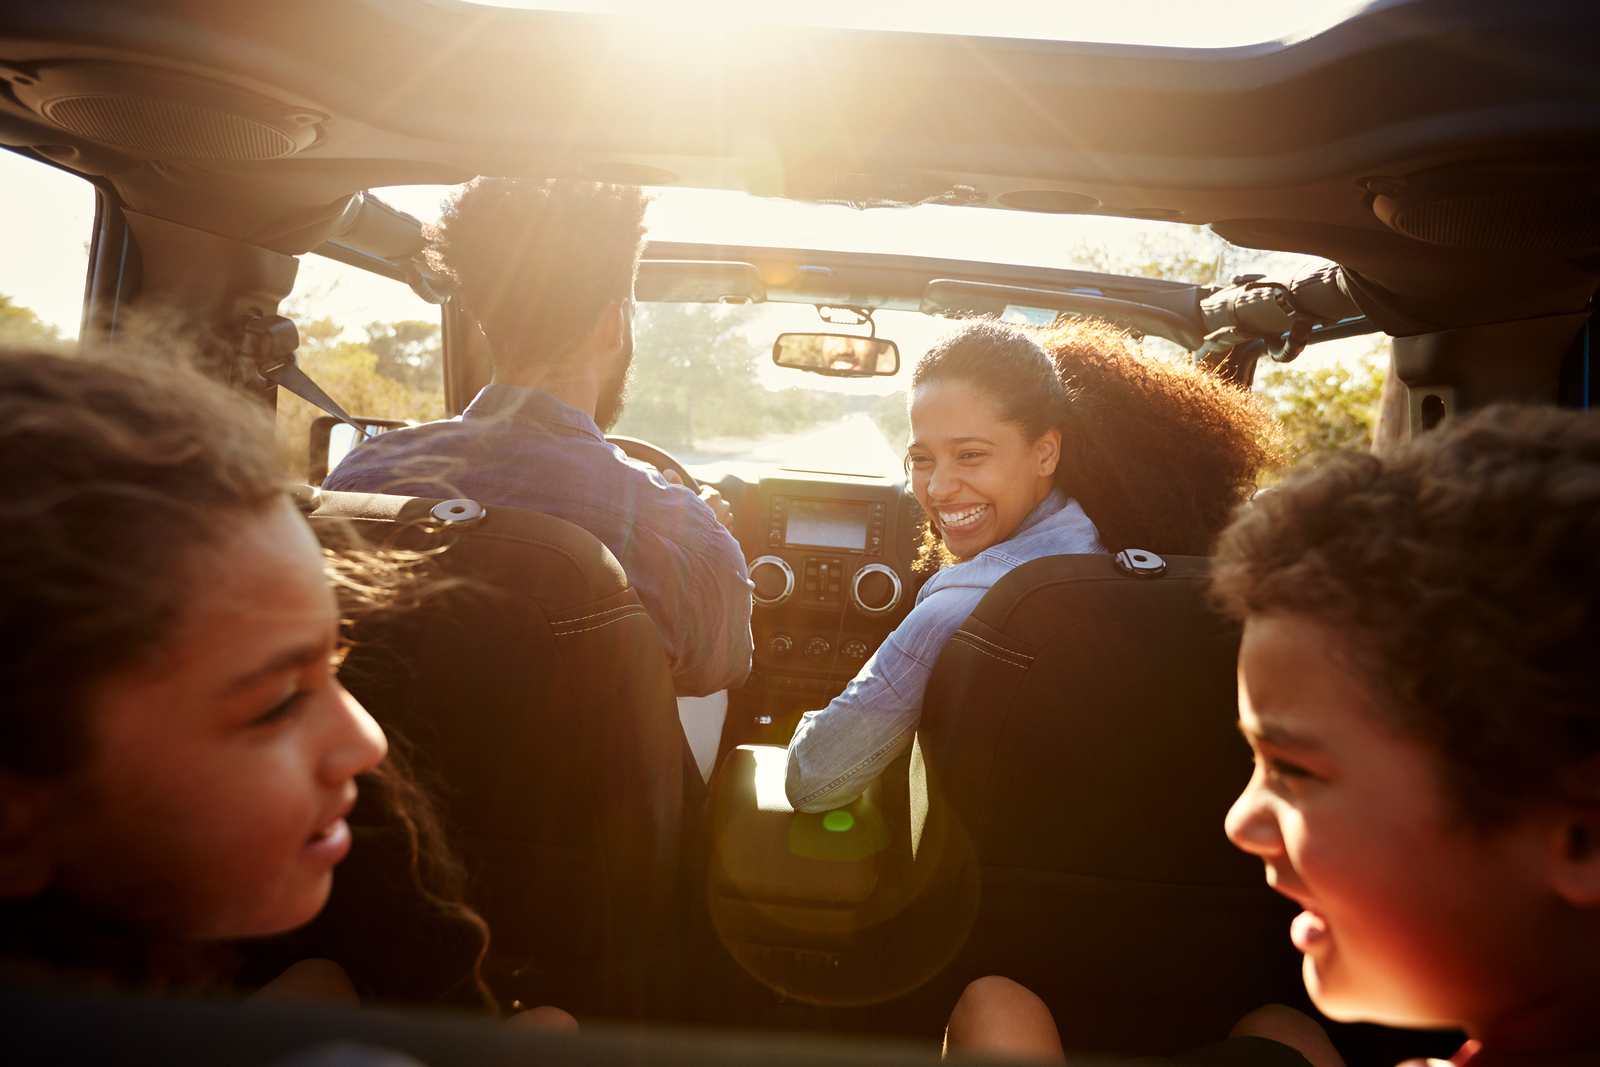 3 road trip games to play with your kids matt and sandee tsuruda